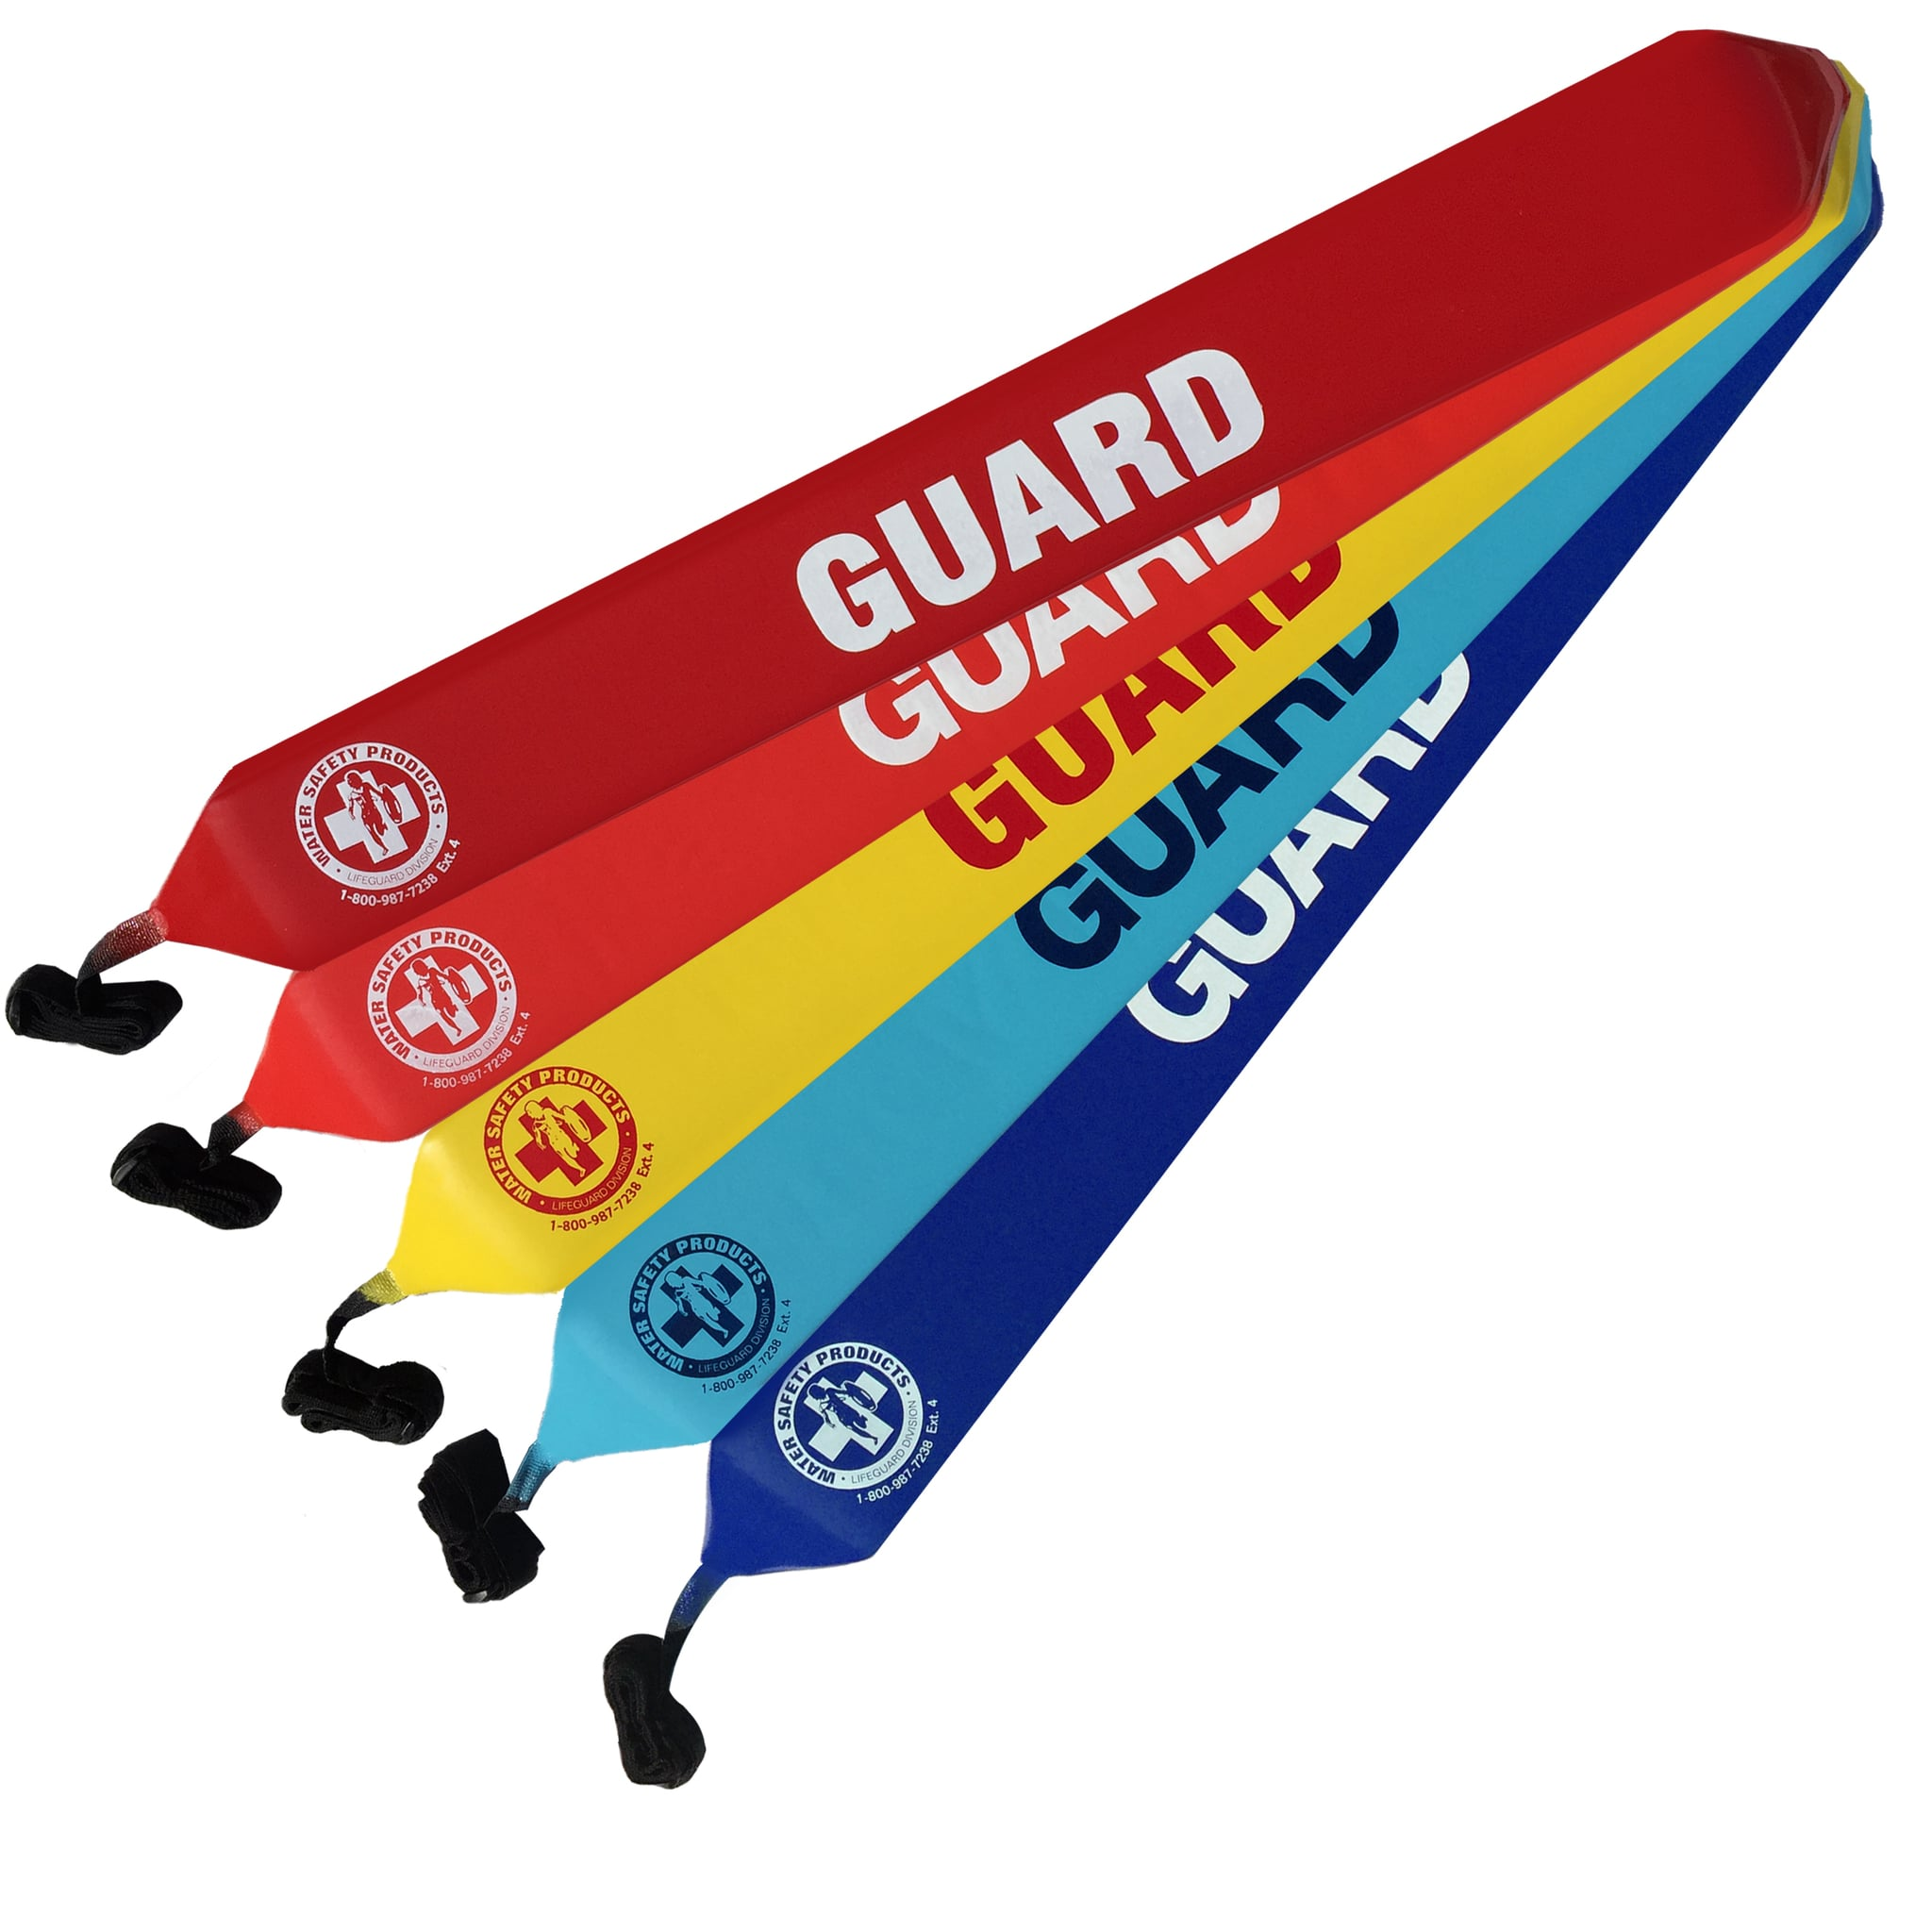 Wsp premium quot colored rescue tube lifeguard